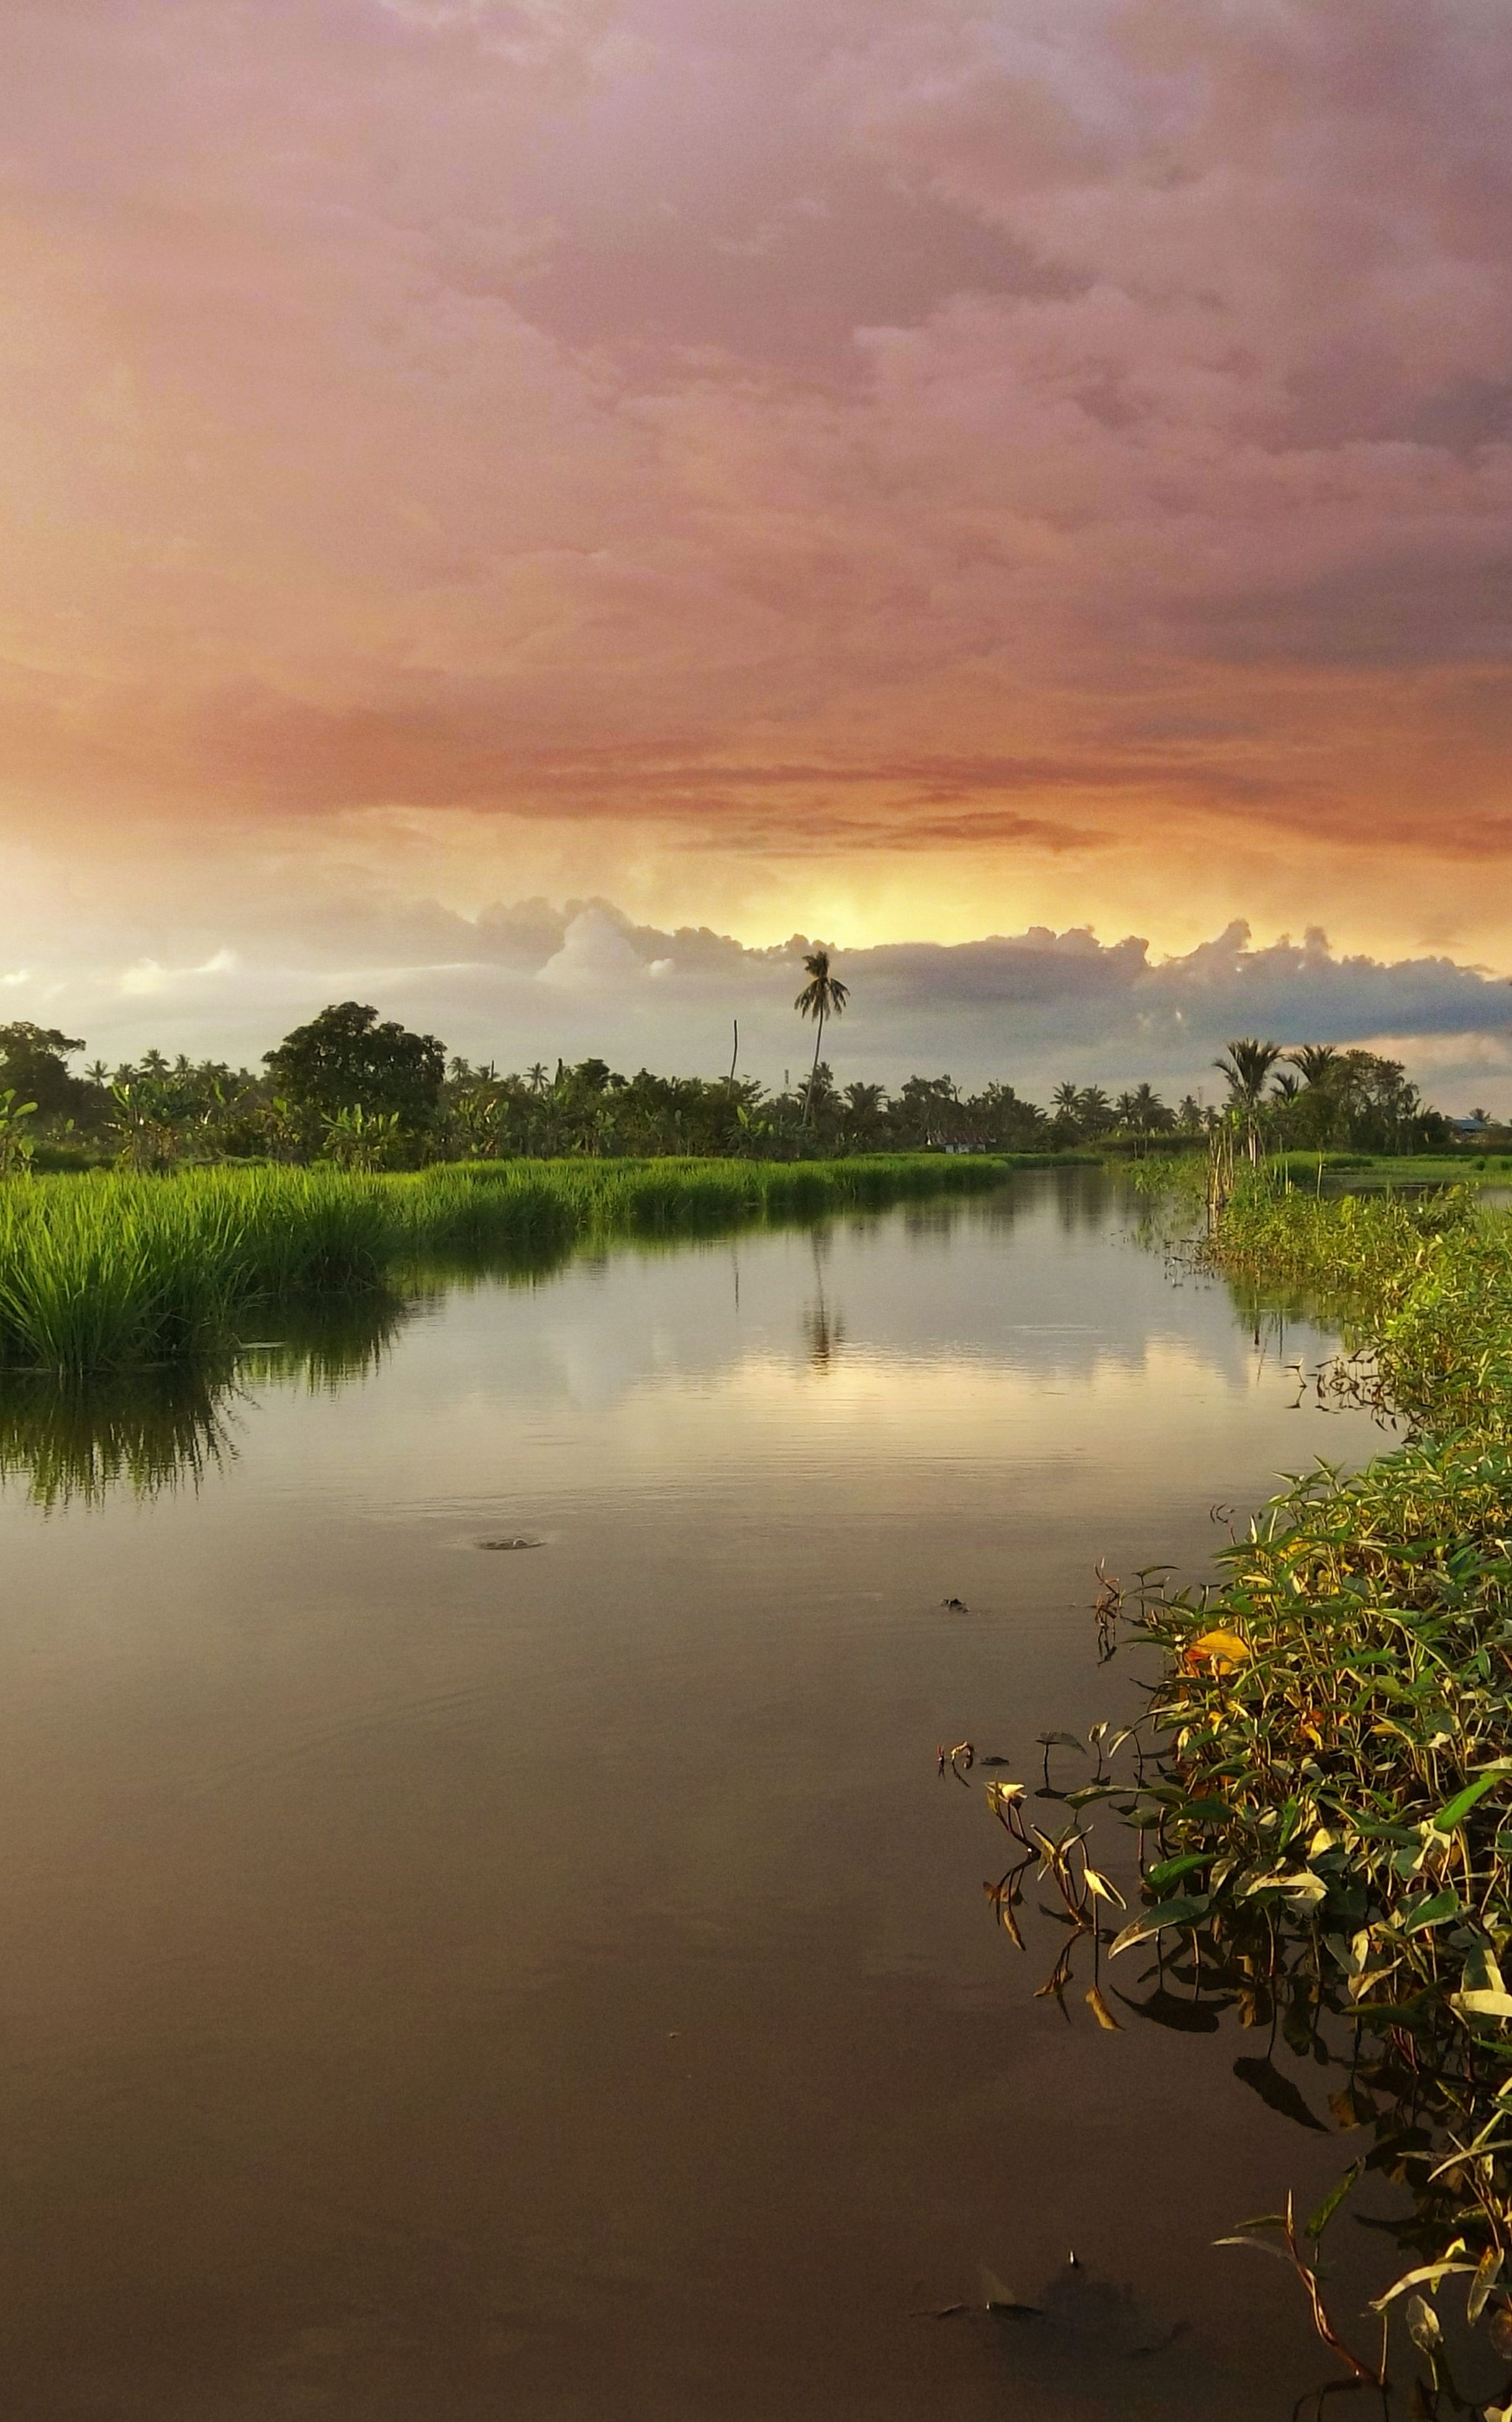 sunset, nature, beauty in nature, tranquil scene, tranquility, orange color, scenics, reflection, water, sky, tree, lake, idyllic, no people, outdoors, cloud - sky, plant, landscape, grass, day